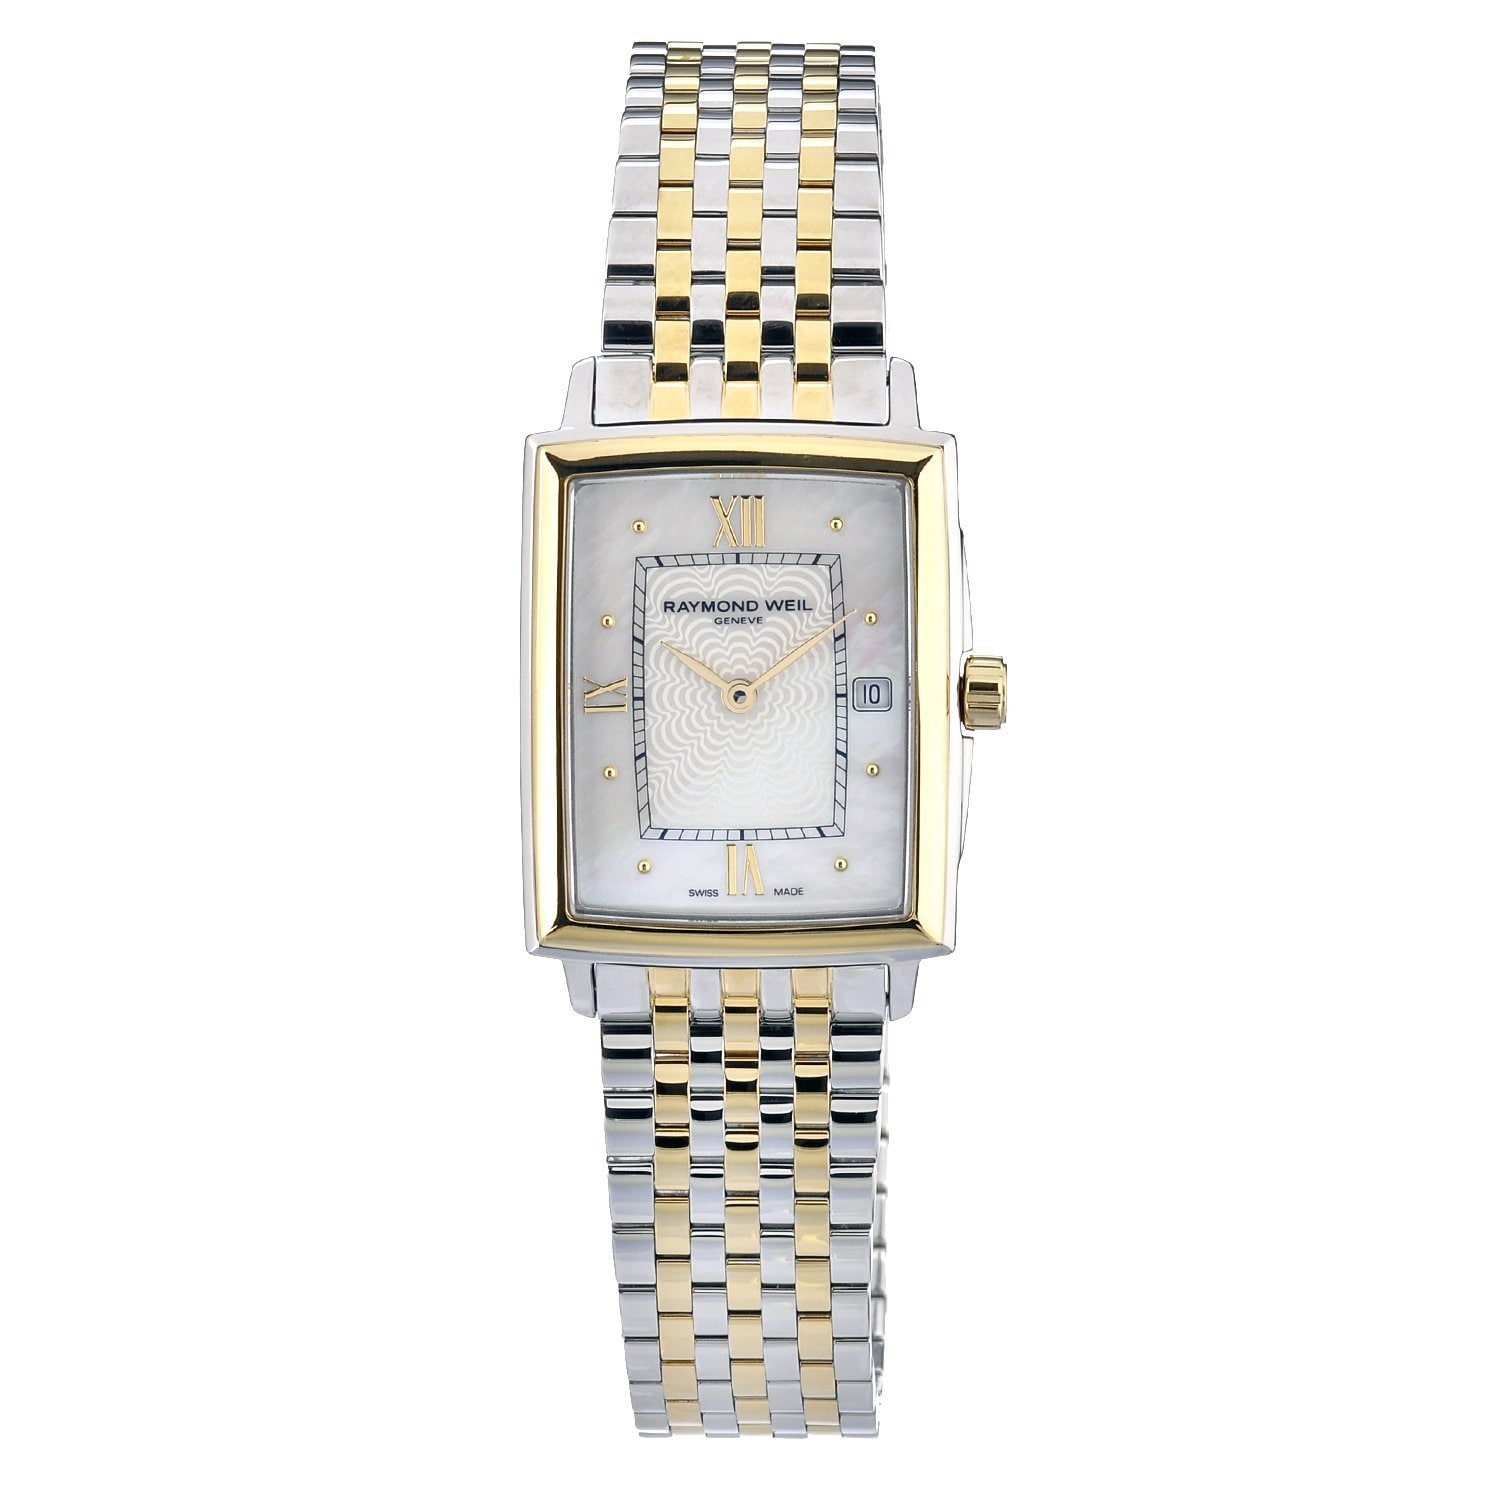 Raymond Weil Women's Two-tone Steel Watch